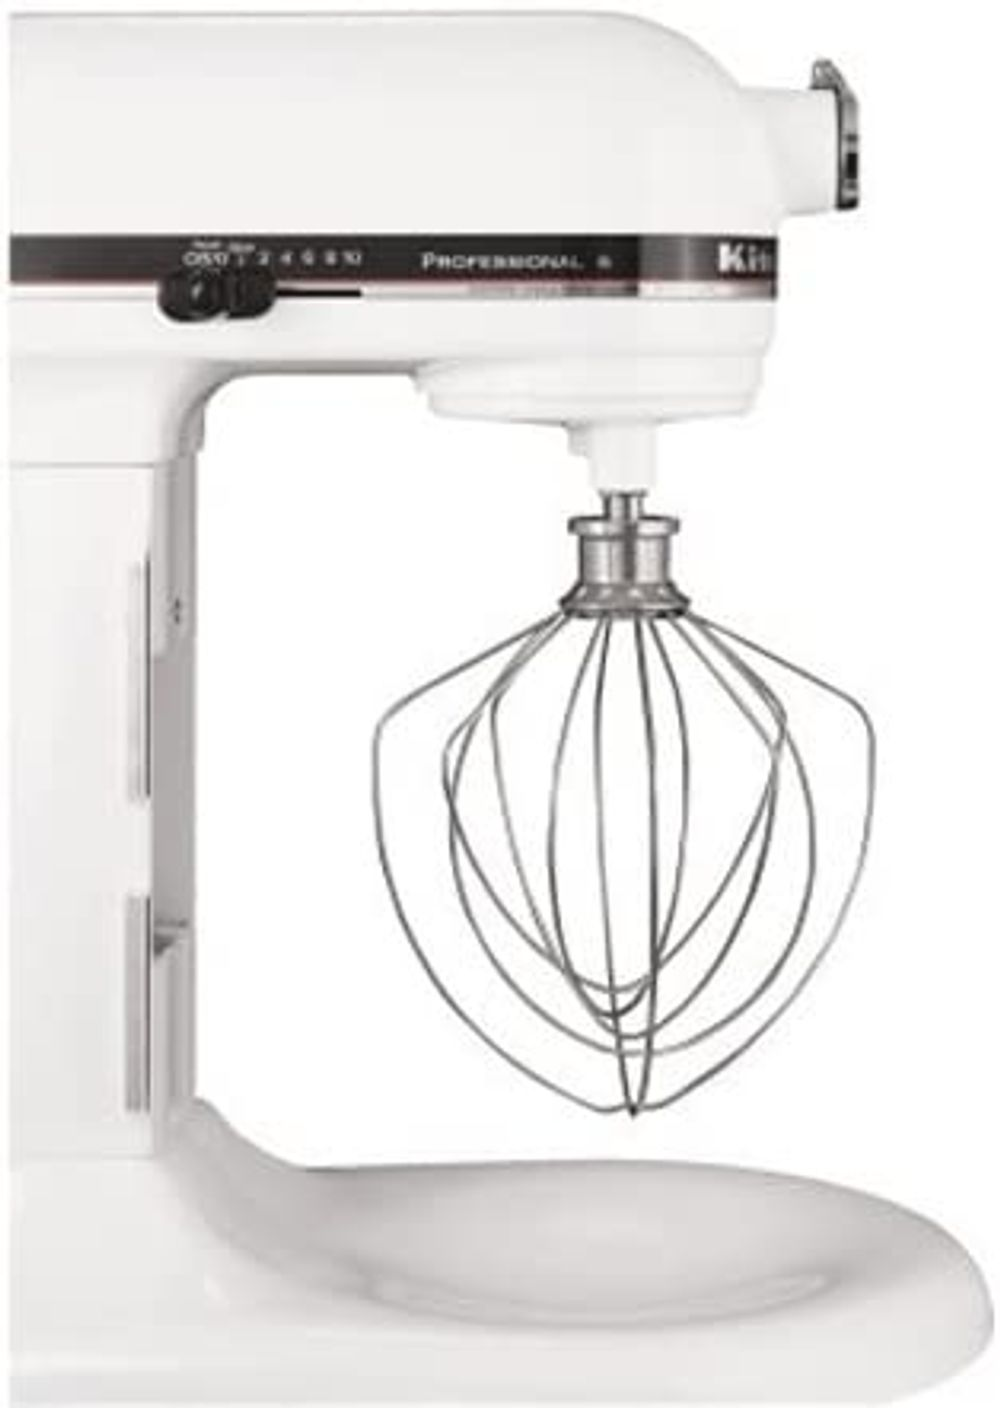 KitchenAid 6-Wire Whip for 5 and 6 Quart Lift Stand Mixers